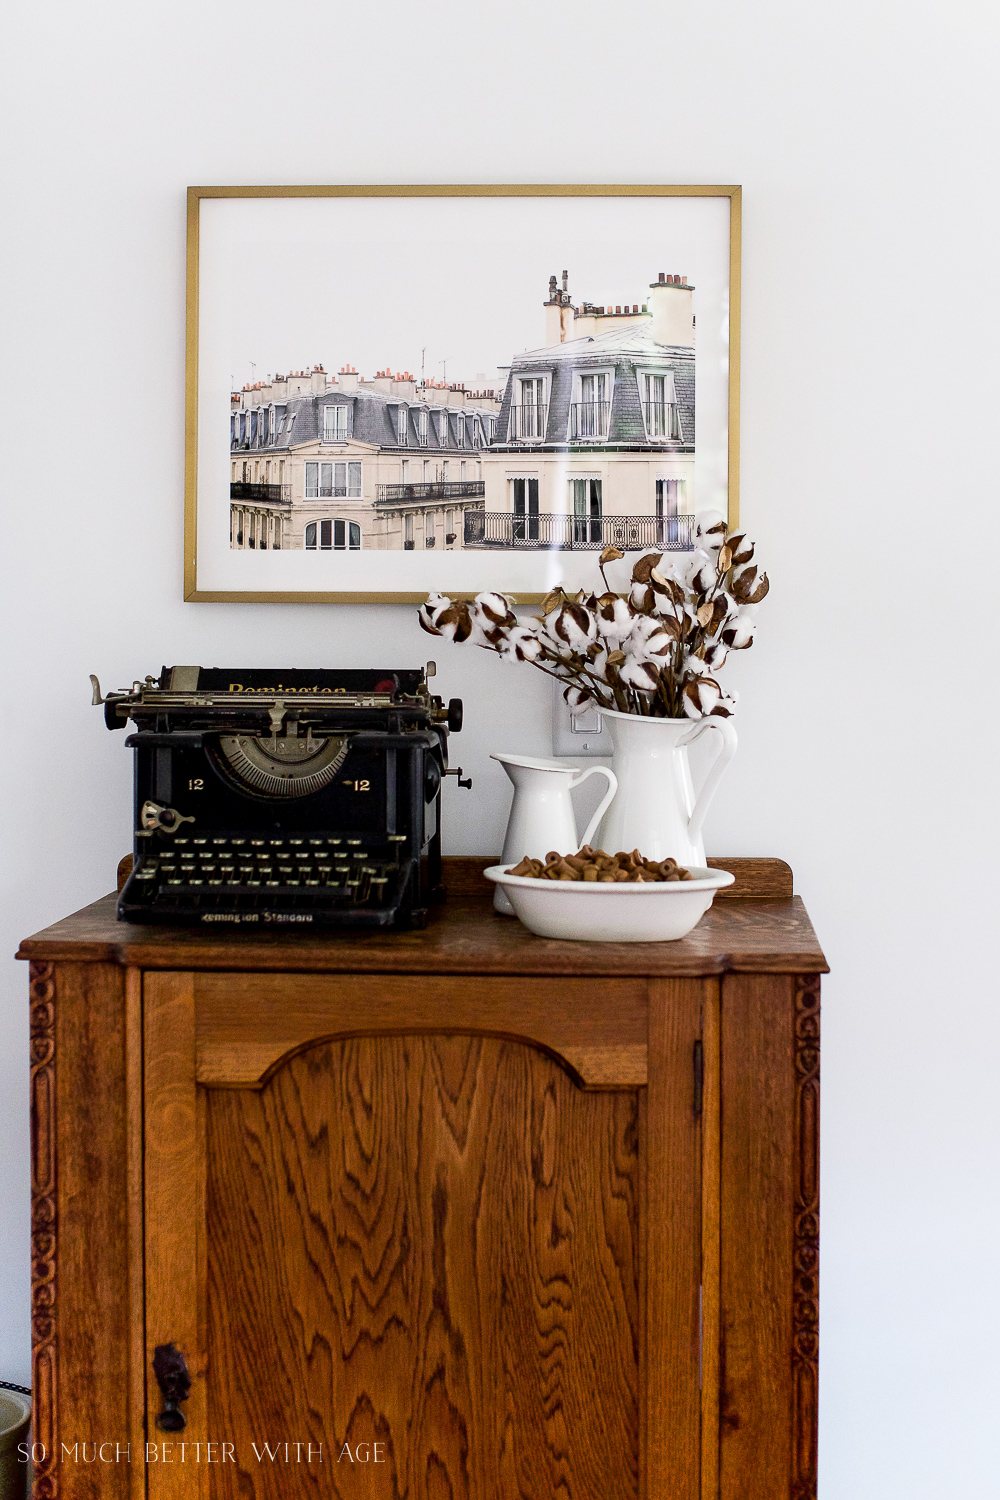 Paris Building, How to Pick Art with a French Vintage Vibe / typewriter on side table - So Much Better With Age